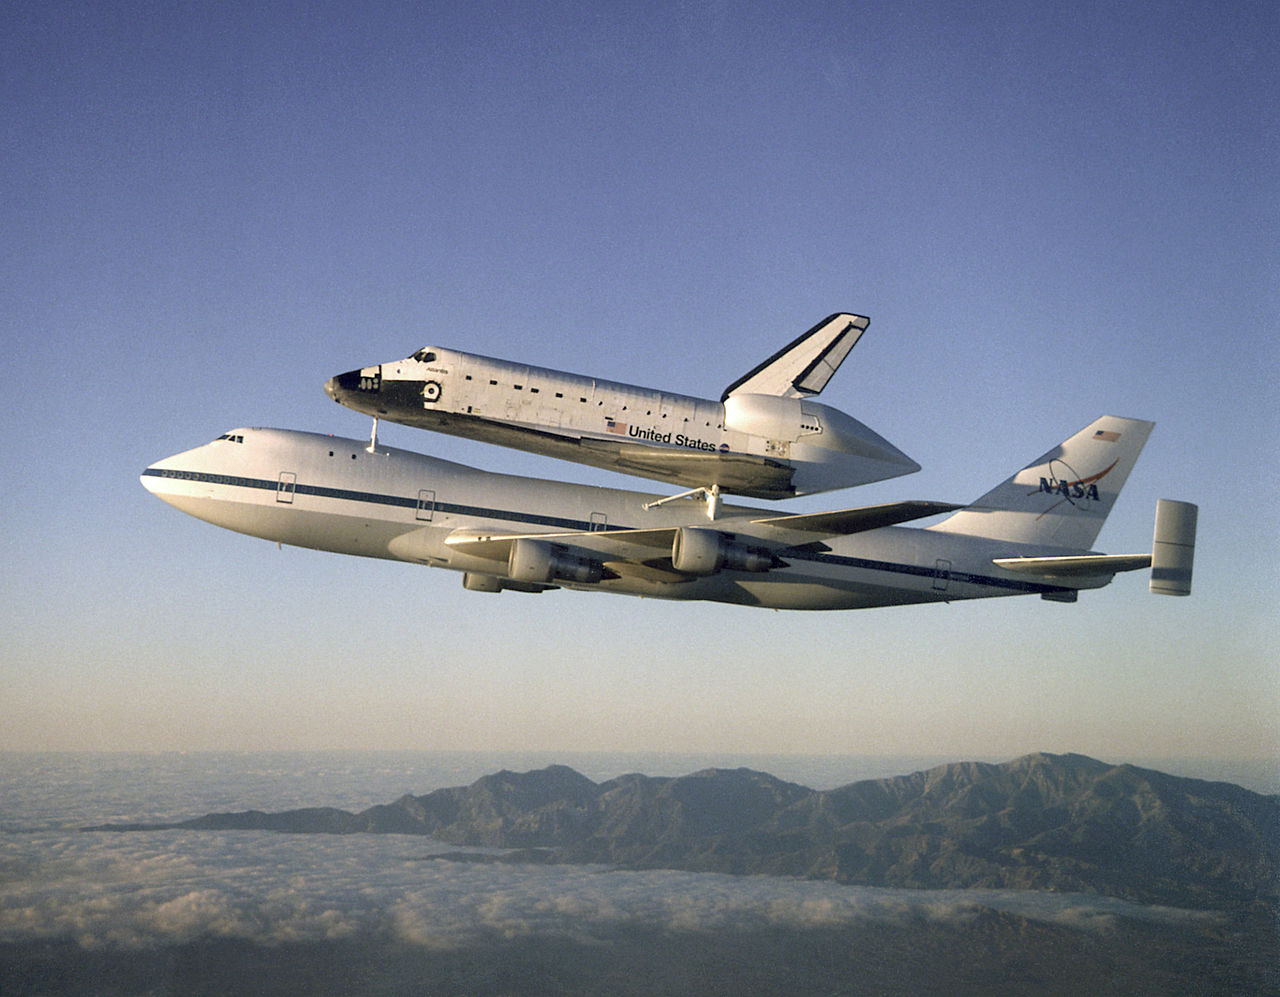 File:Atlantis on Shuttle Carrier Aircraft.jpg - Wikimedia ...